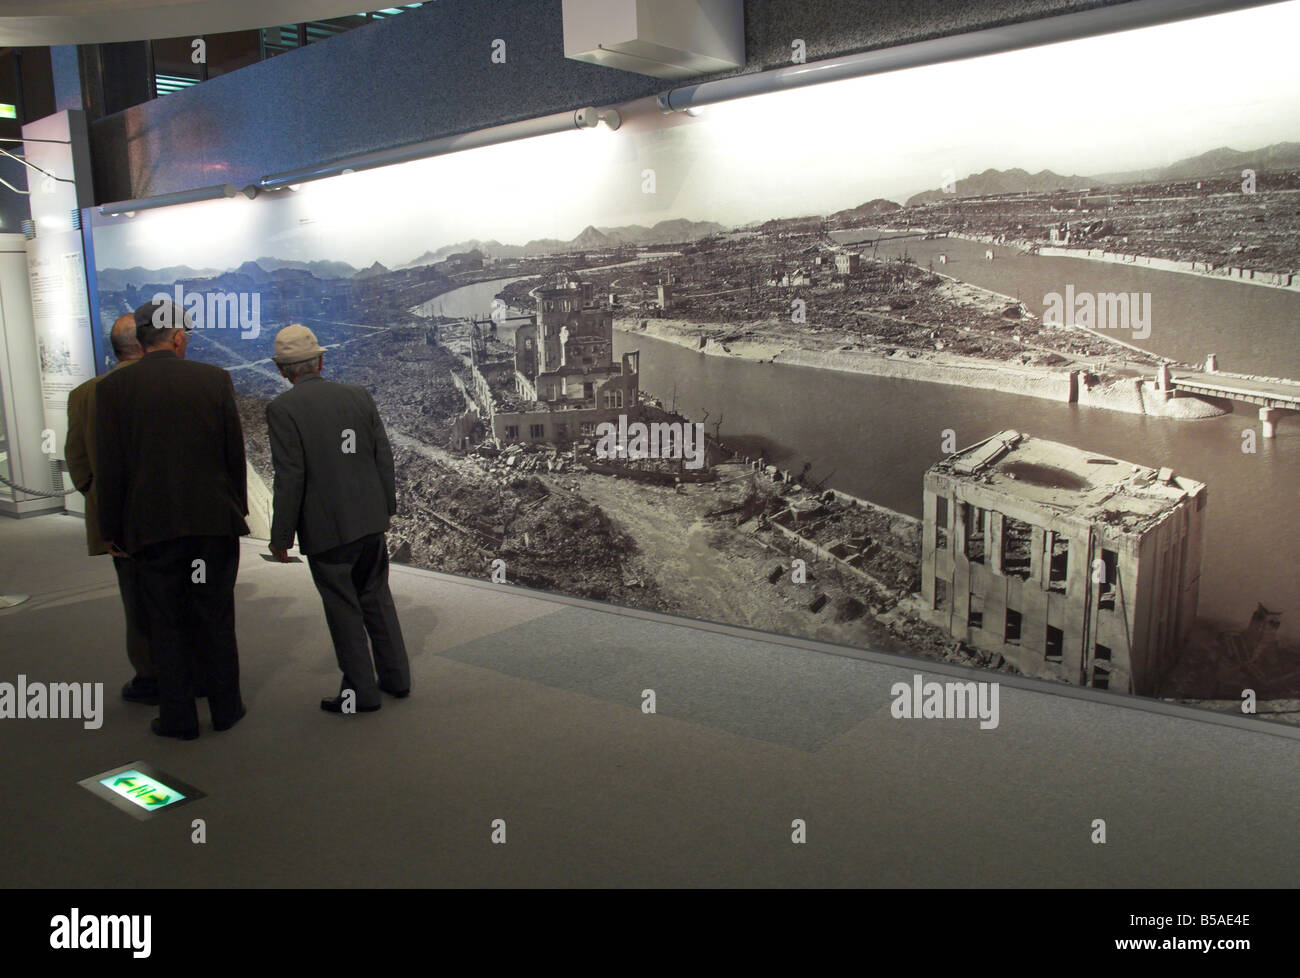 Visitors looking at huge wall poster showing the destruction of the city after the atomic bomb, Hiroshima, Honshu, - Stock Image